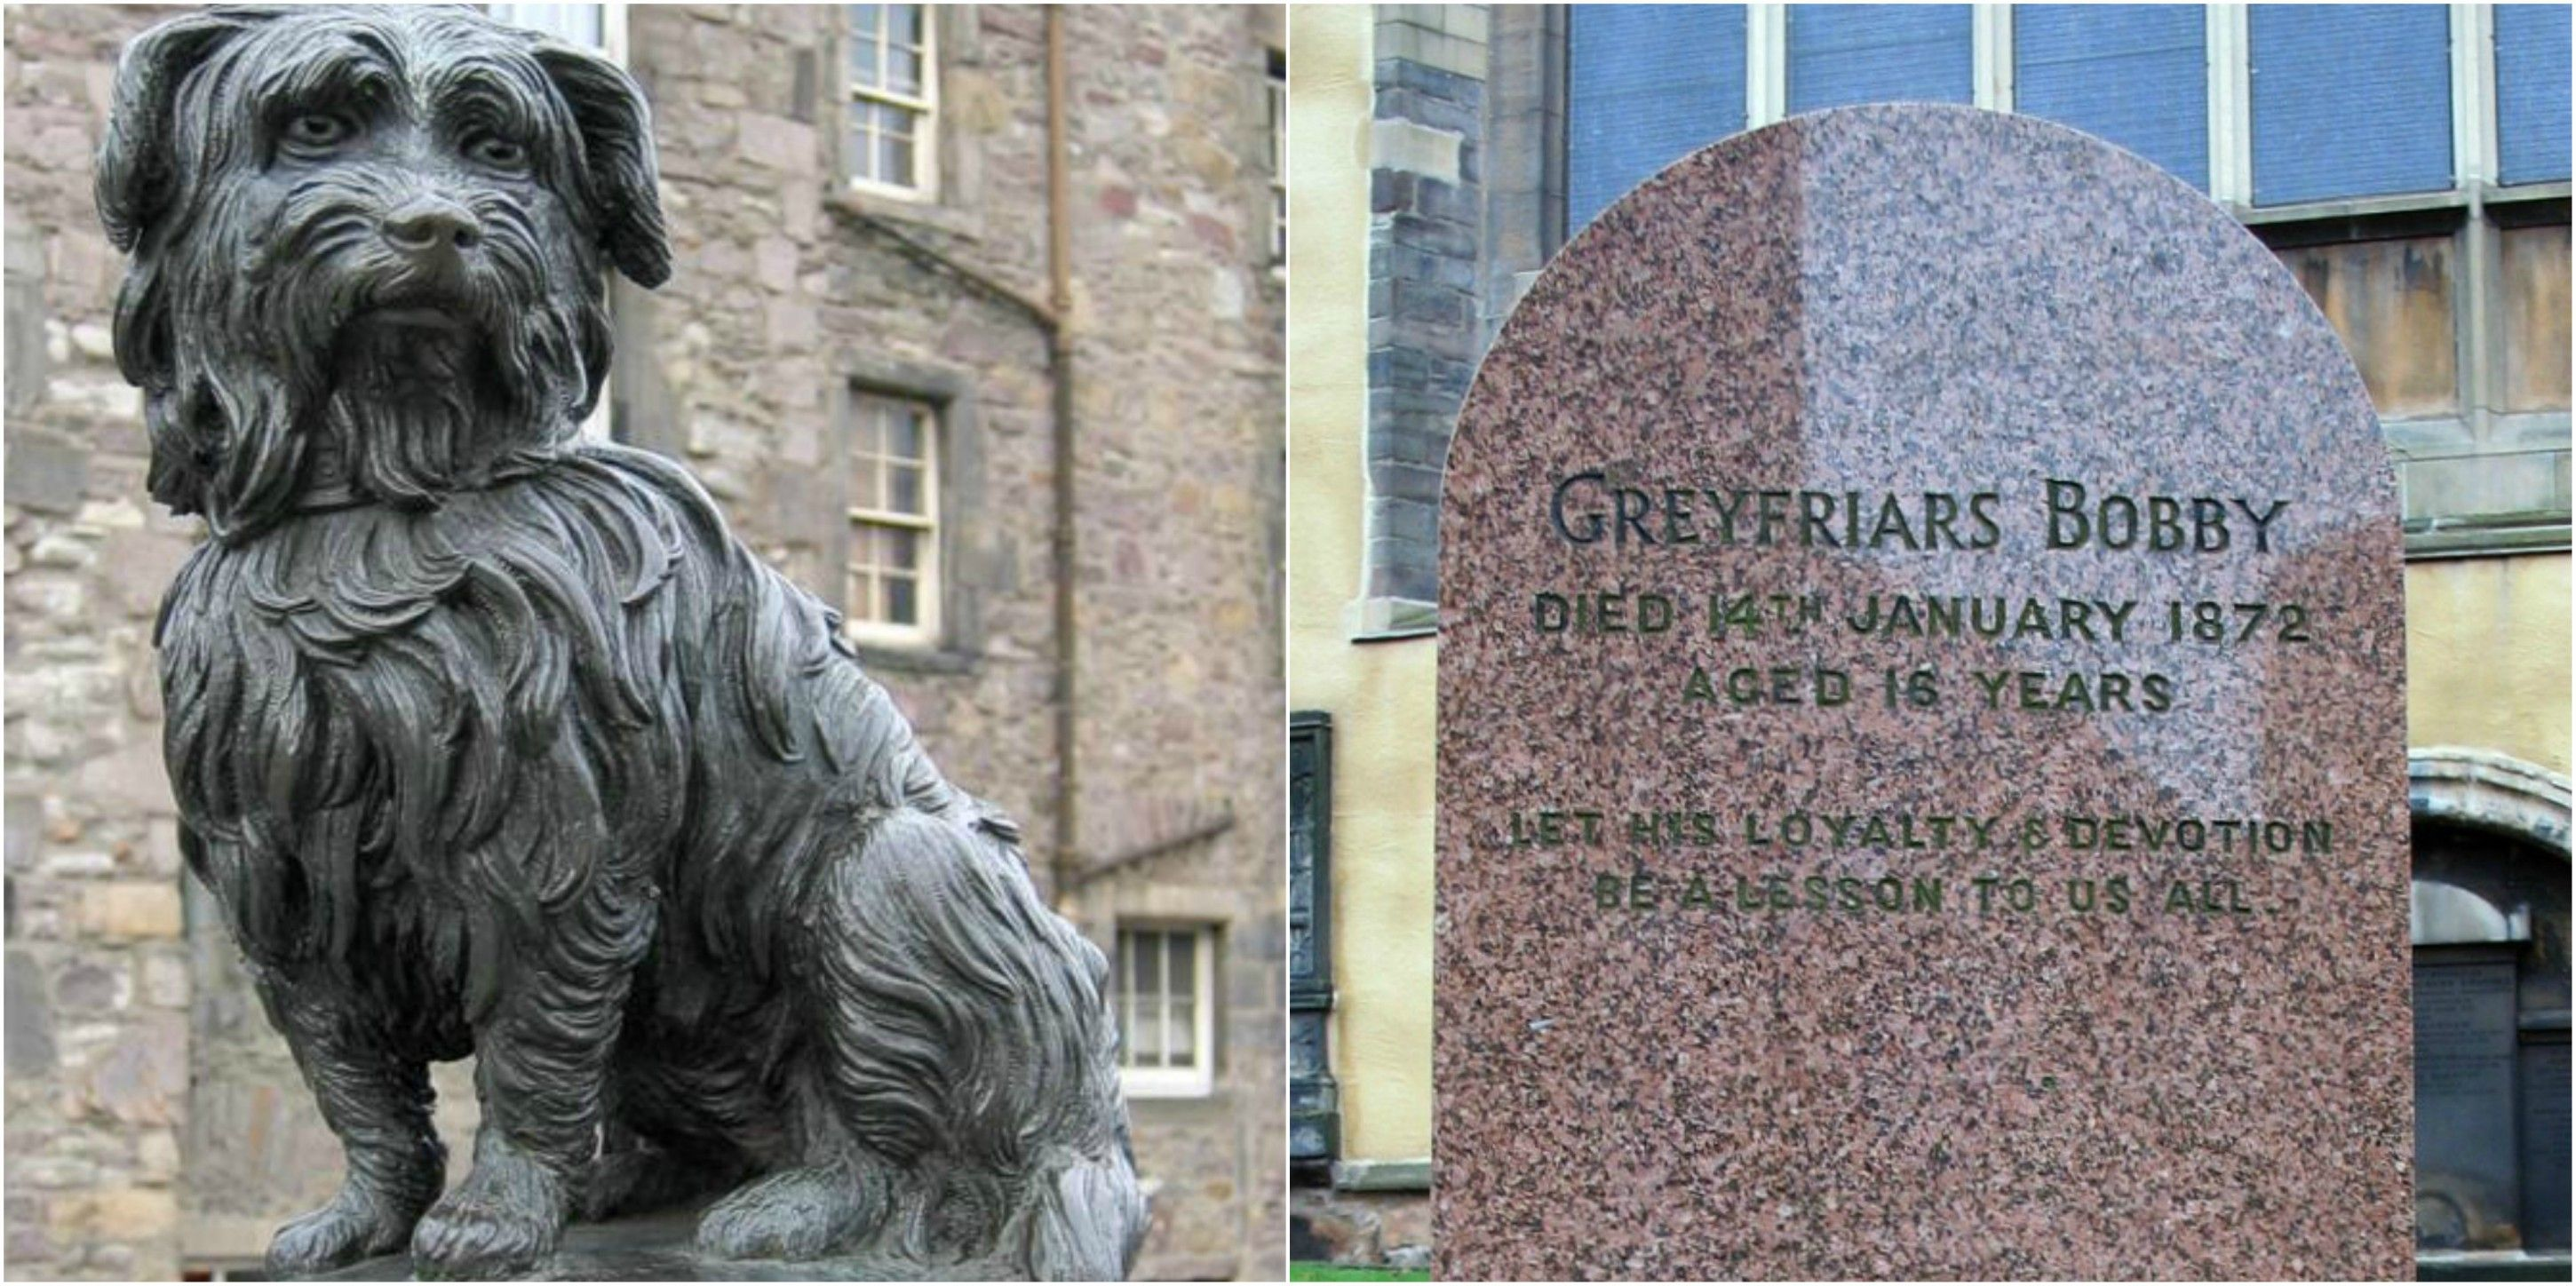 Greyfriars Bobby The Dog That Spent 14 Years Guarding The Grave